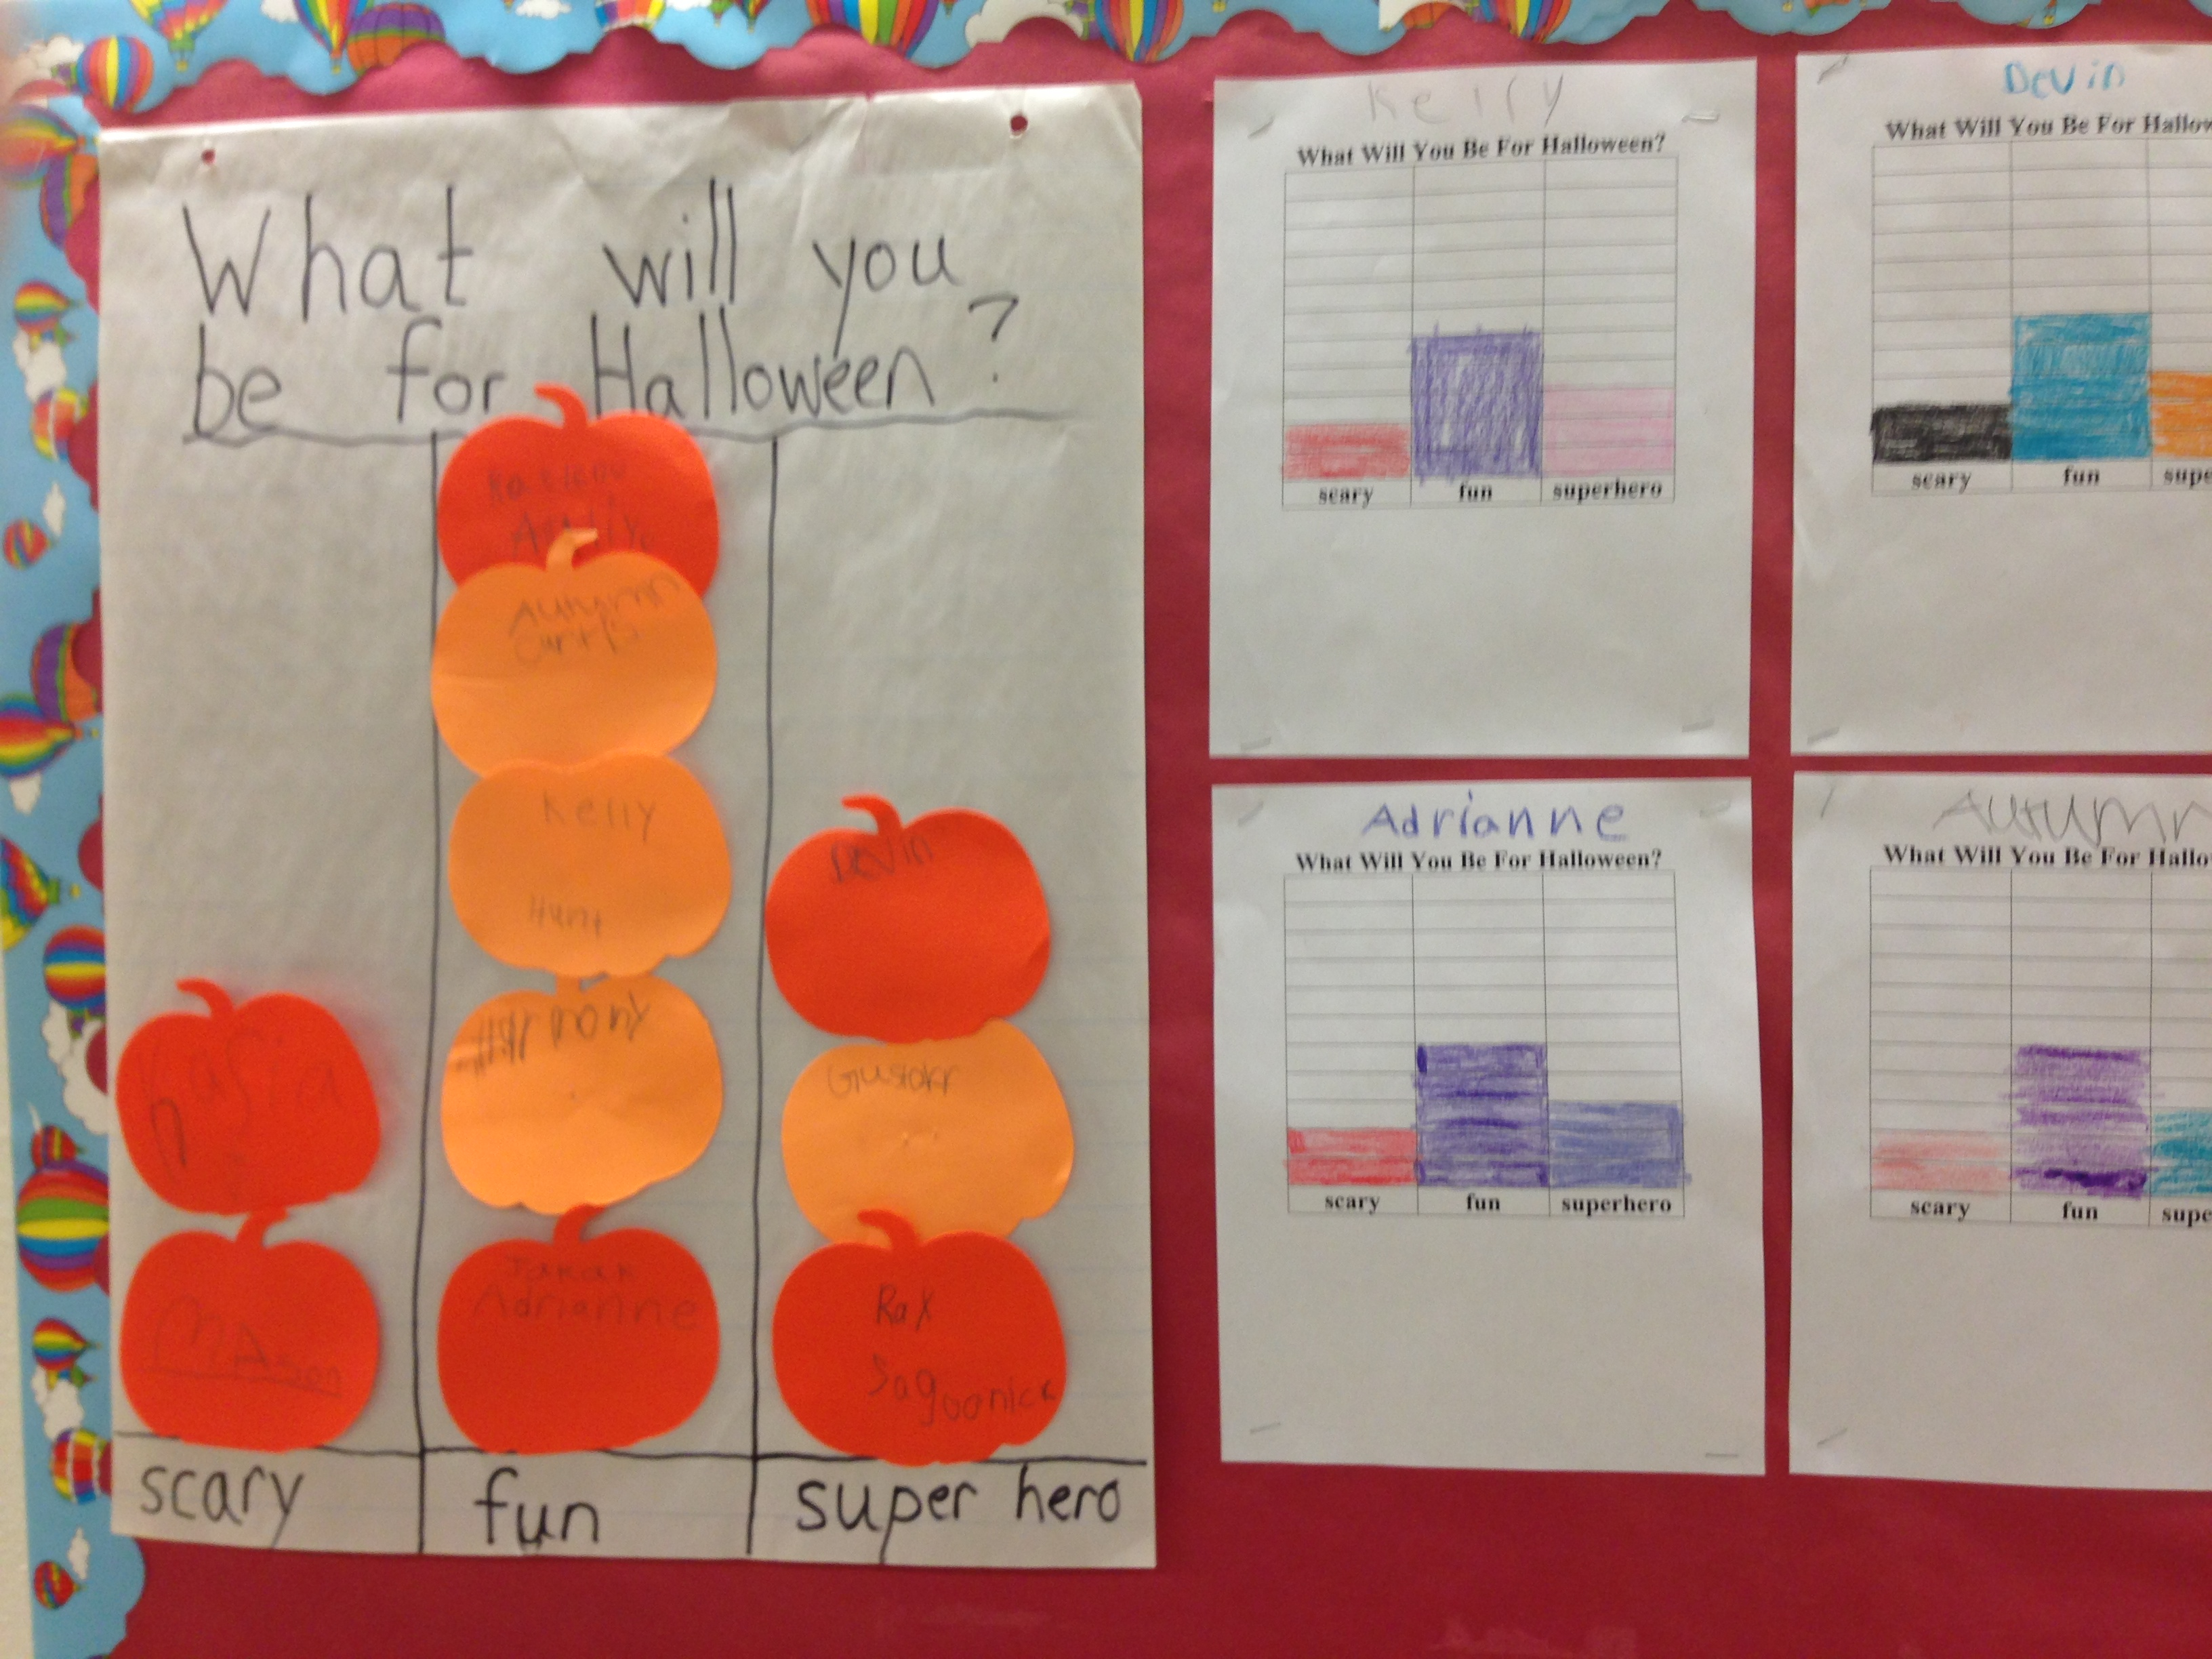 What Will You Be For Halloween Bar Graph